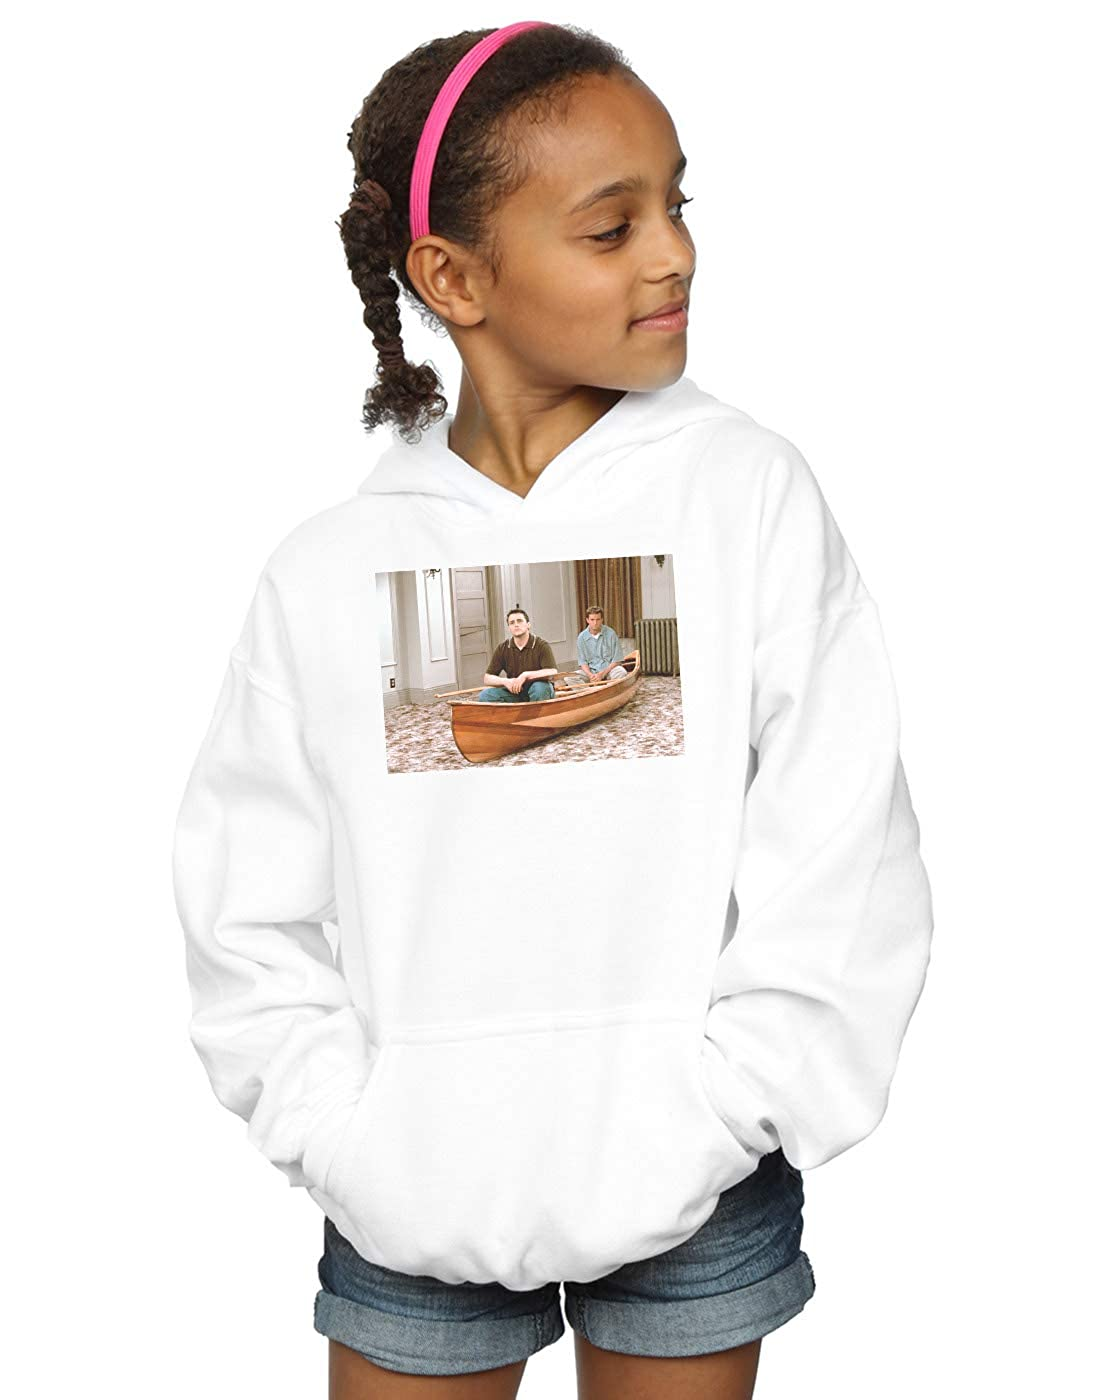 Absolute Cult Friends Girls Boat Photo Sweatshirt